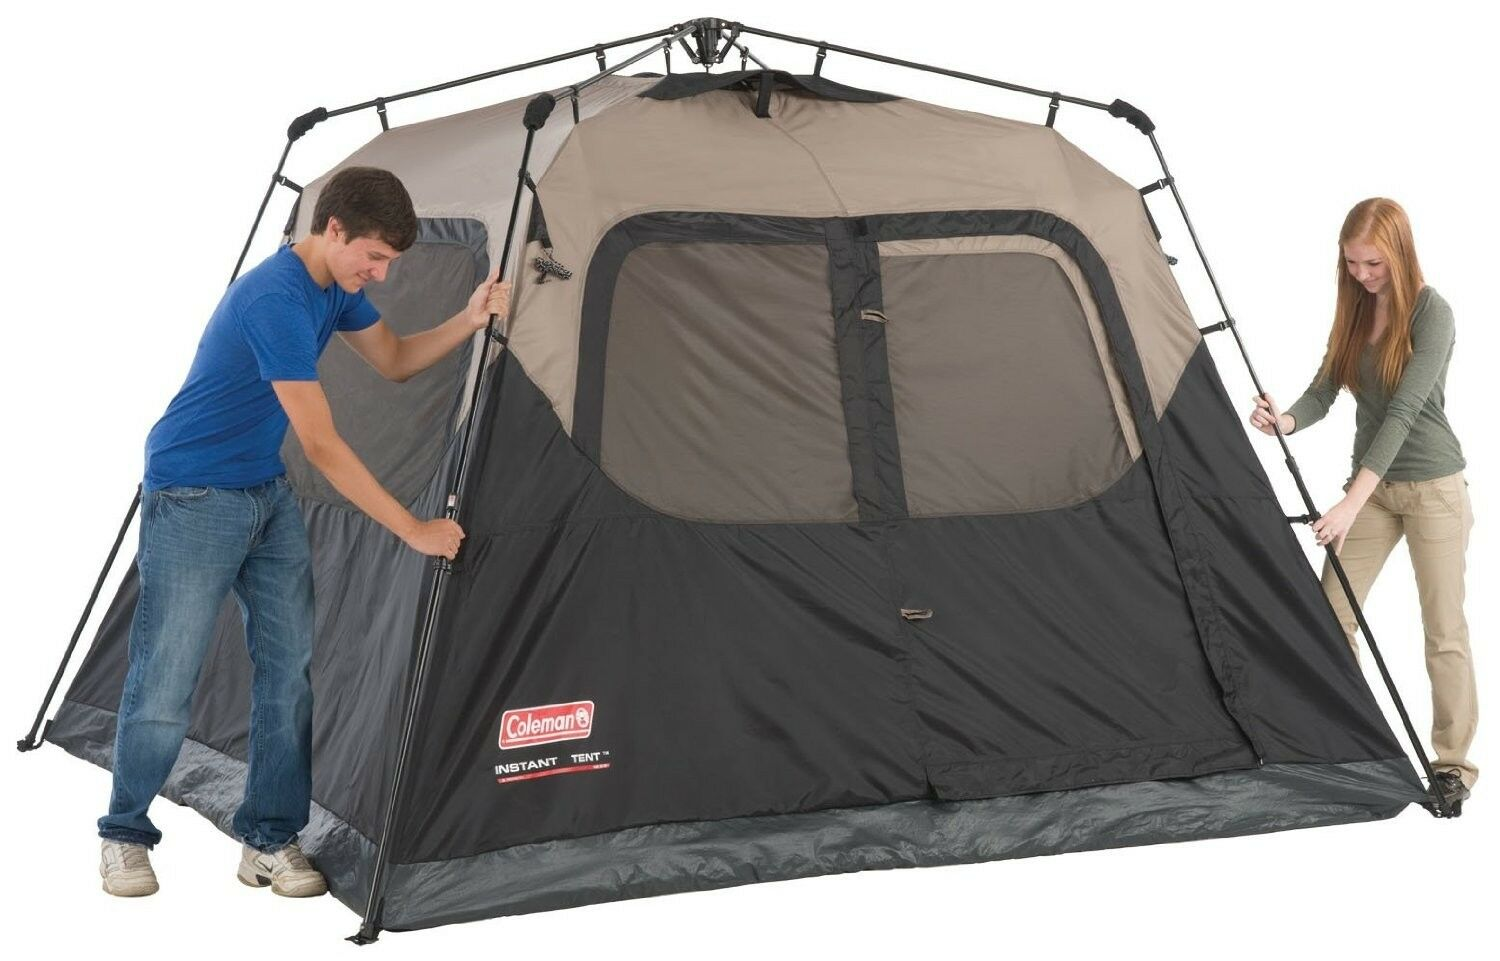 COLEMAN 6 PERSON INSTANT TENT CAMPING WATERPROOF WEATHERTEC CAMPING OUTDOOR NEW